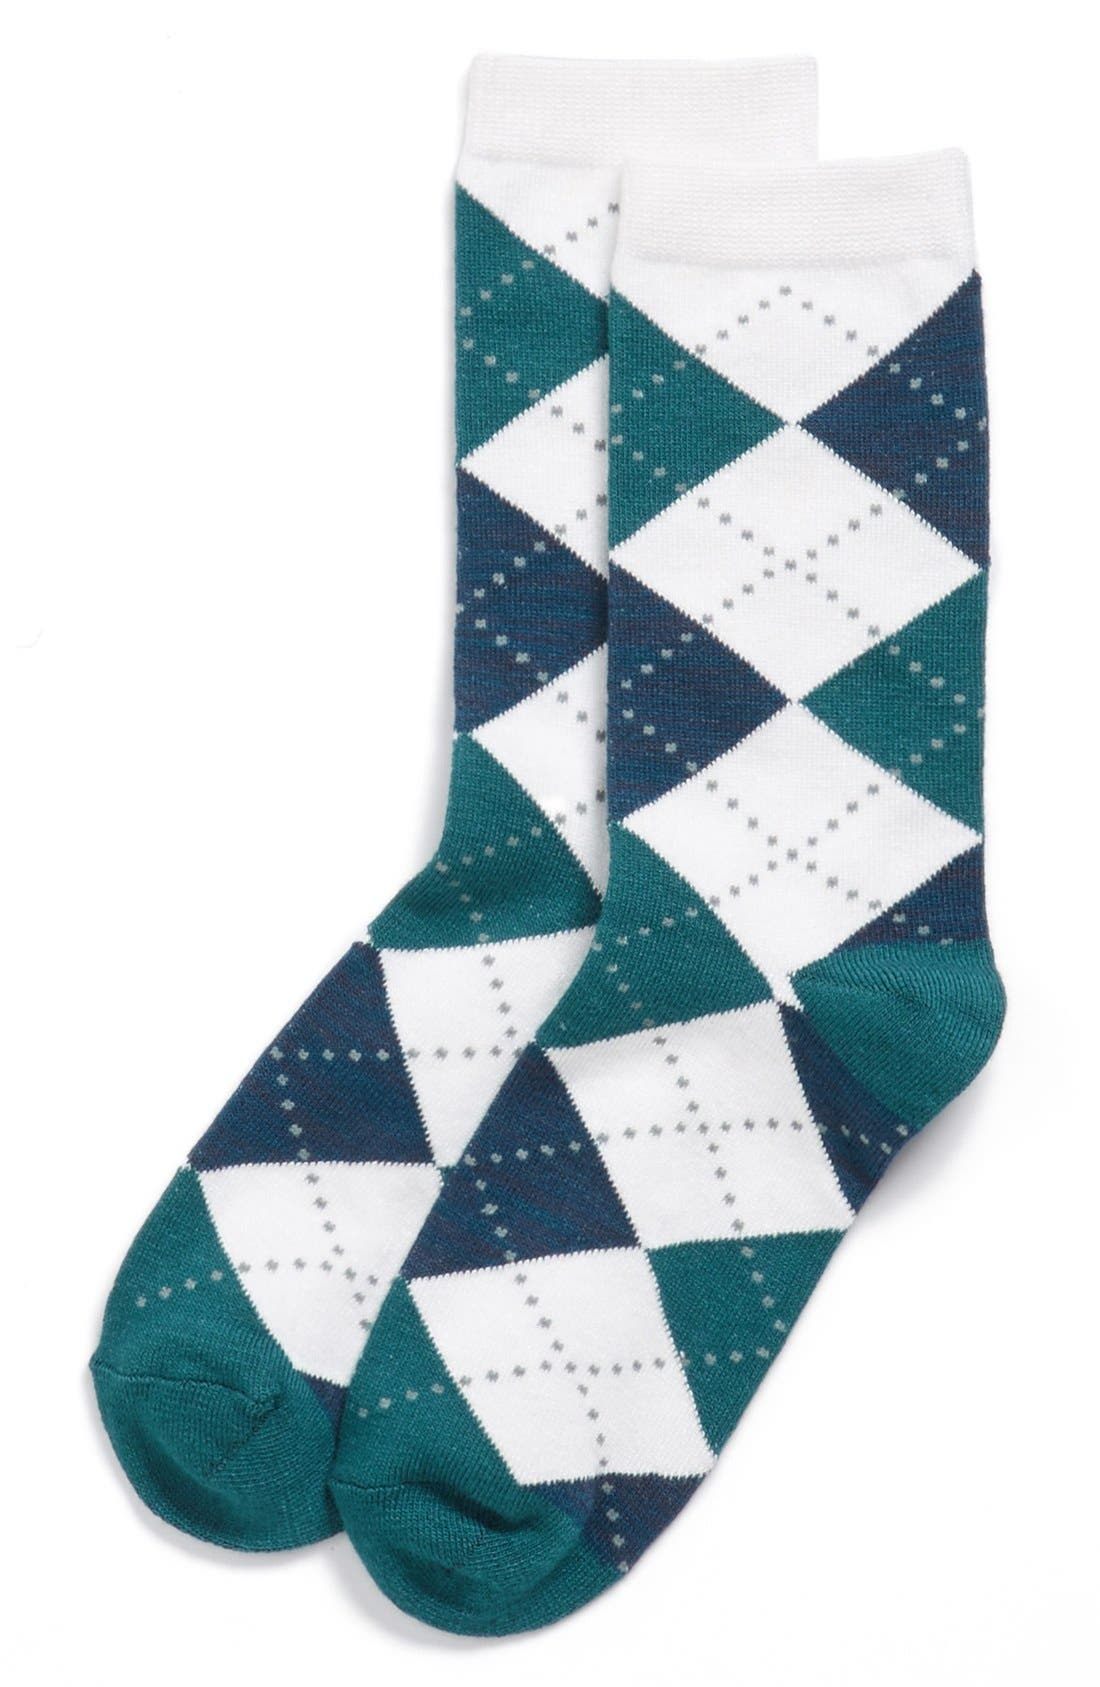 Main Image - Nordstrom 'Soft Touch' Argyle Crew Socks (3 for $18)